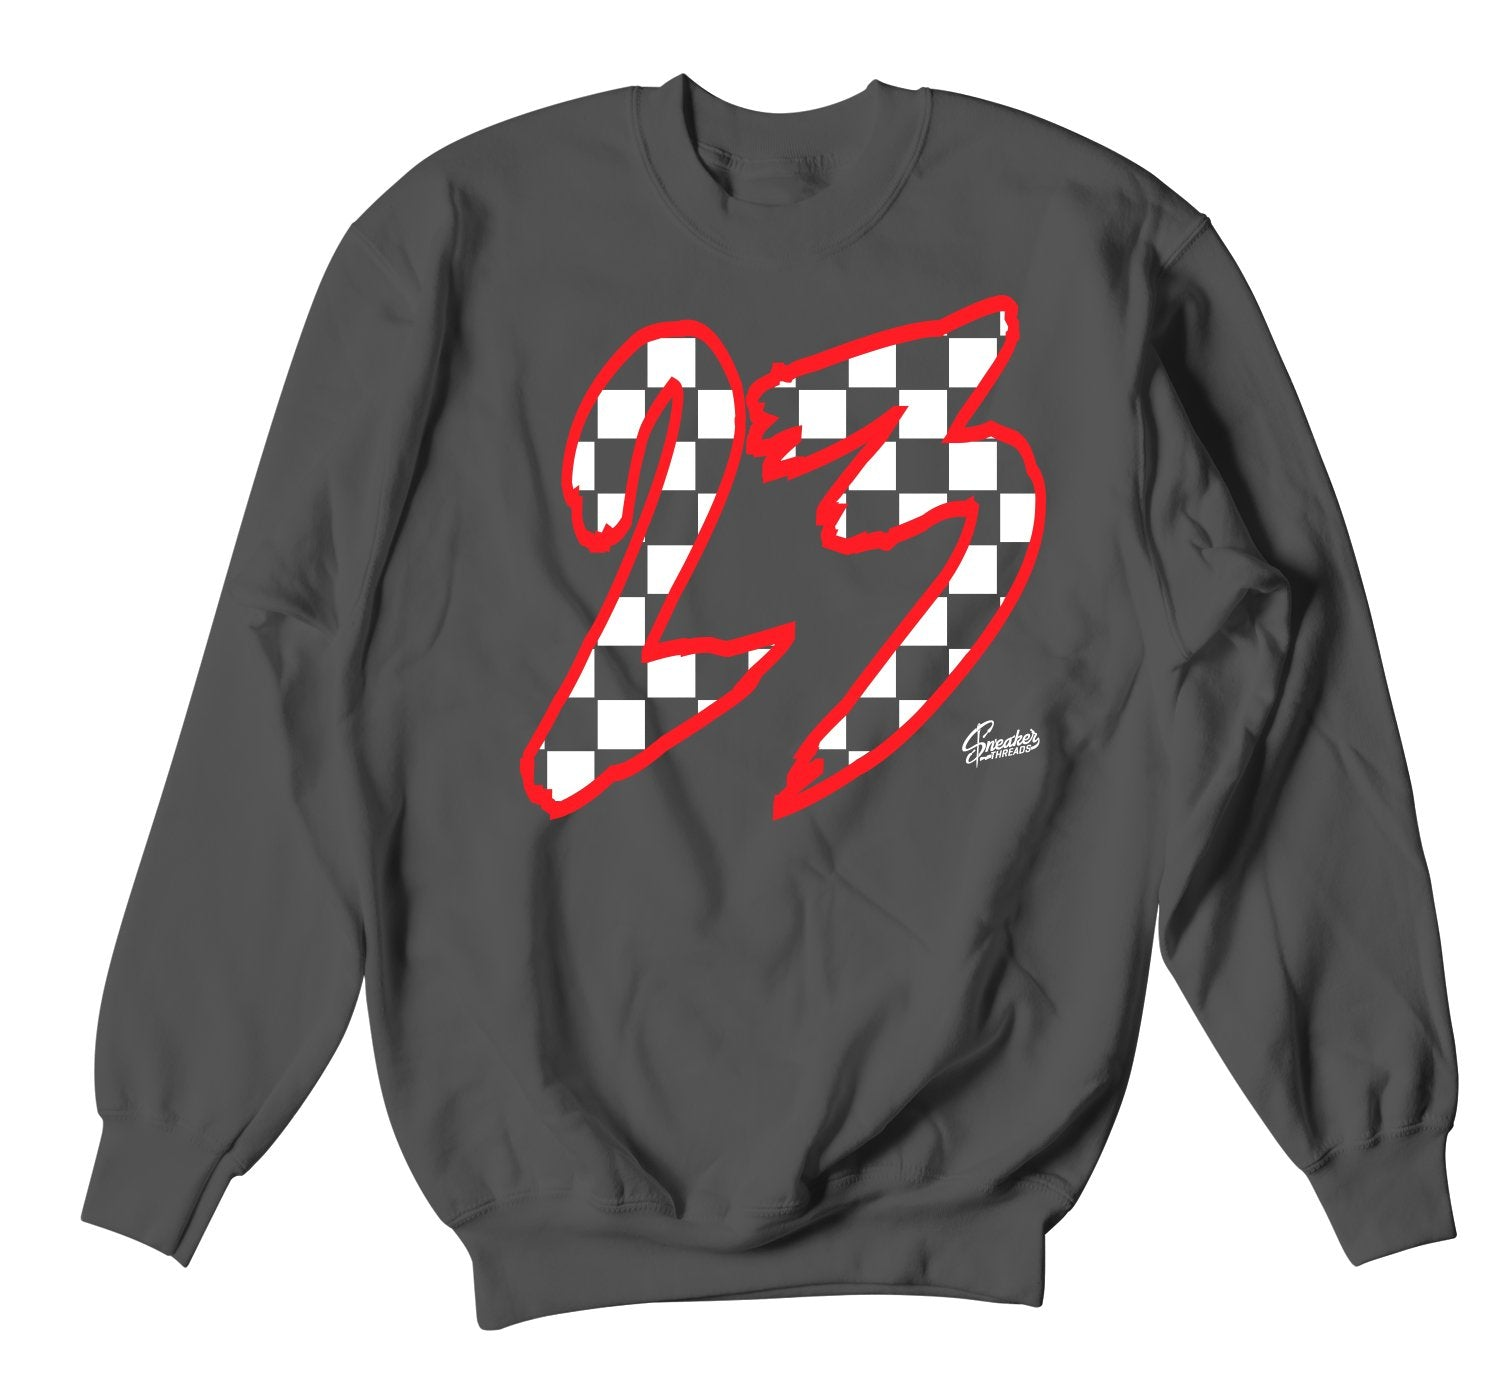 sweater crewneck collection for mens matches Jordan 12 dark grey sneakers